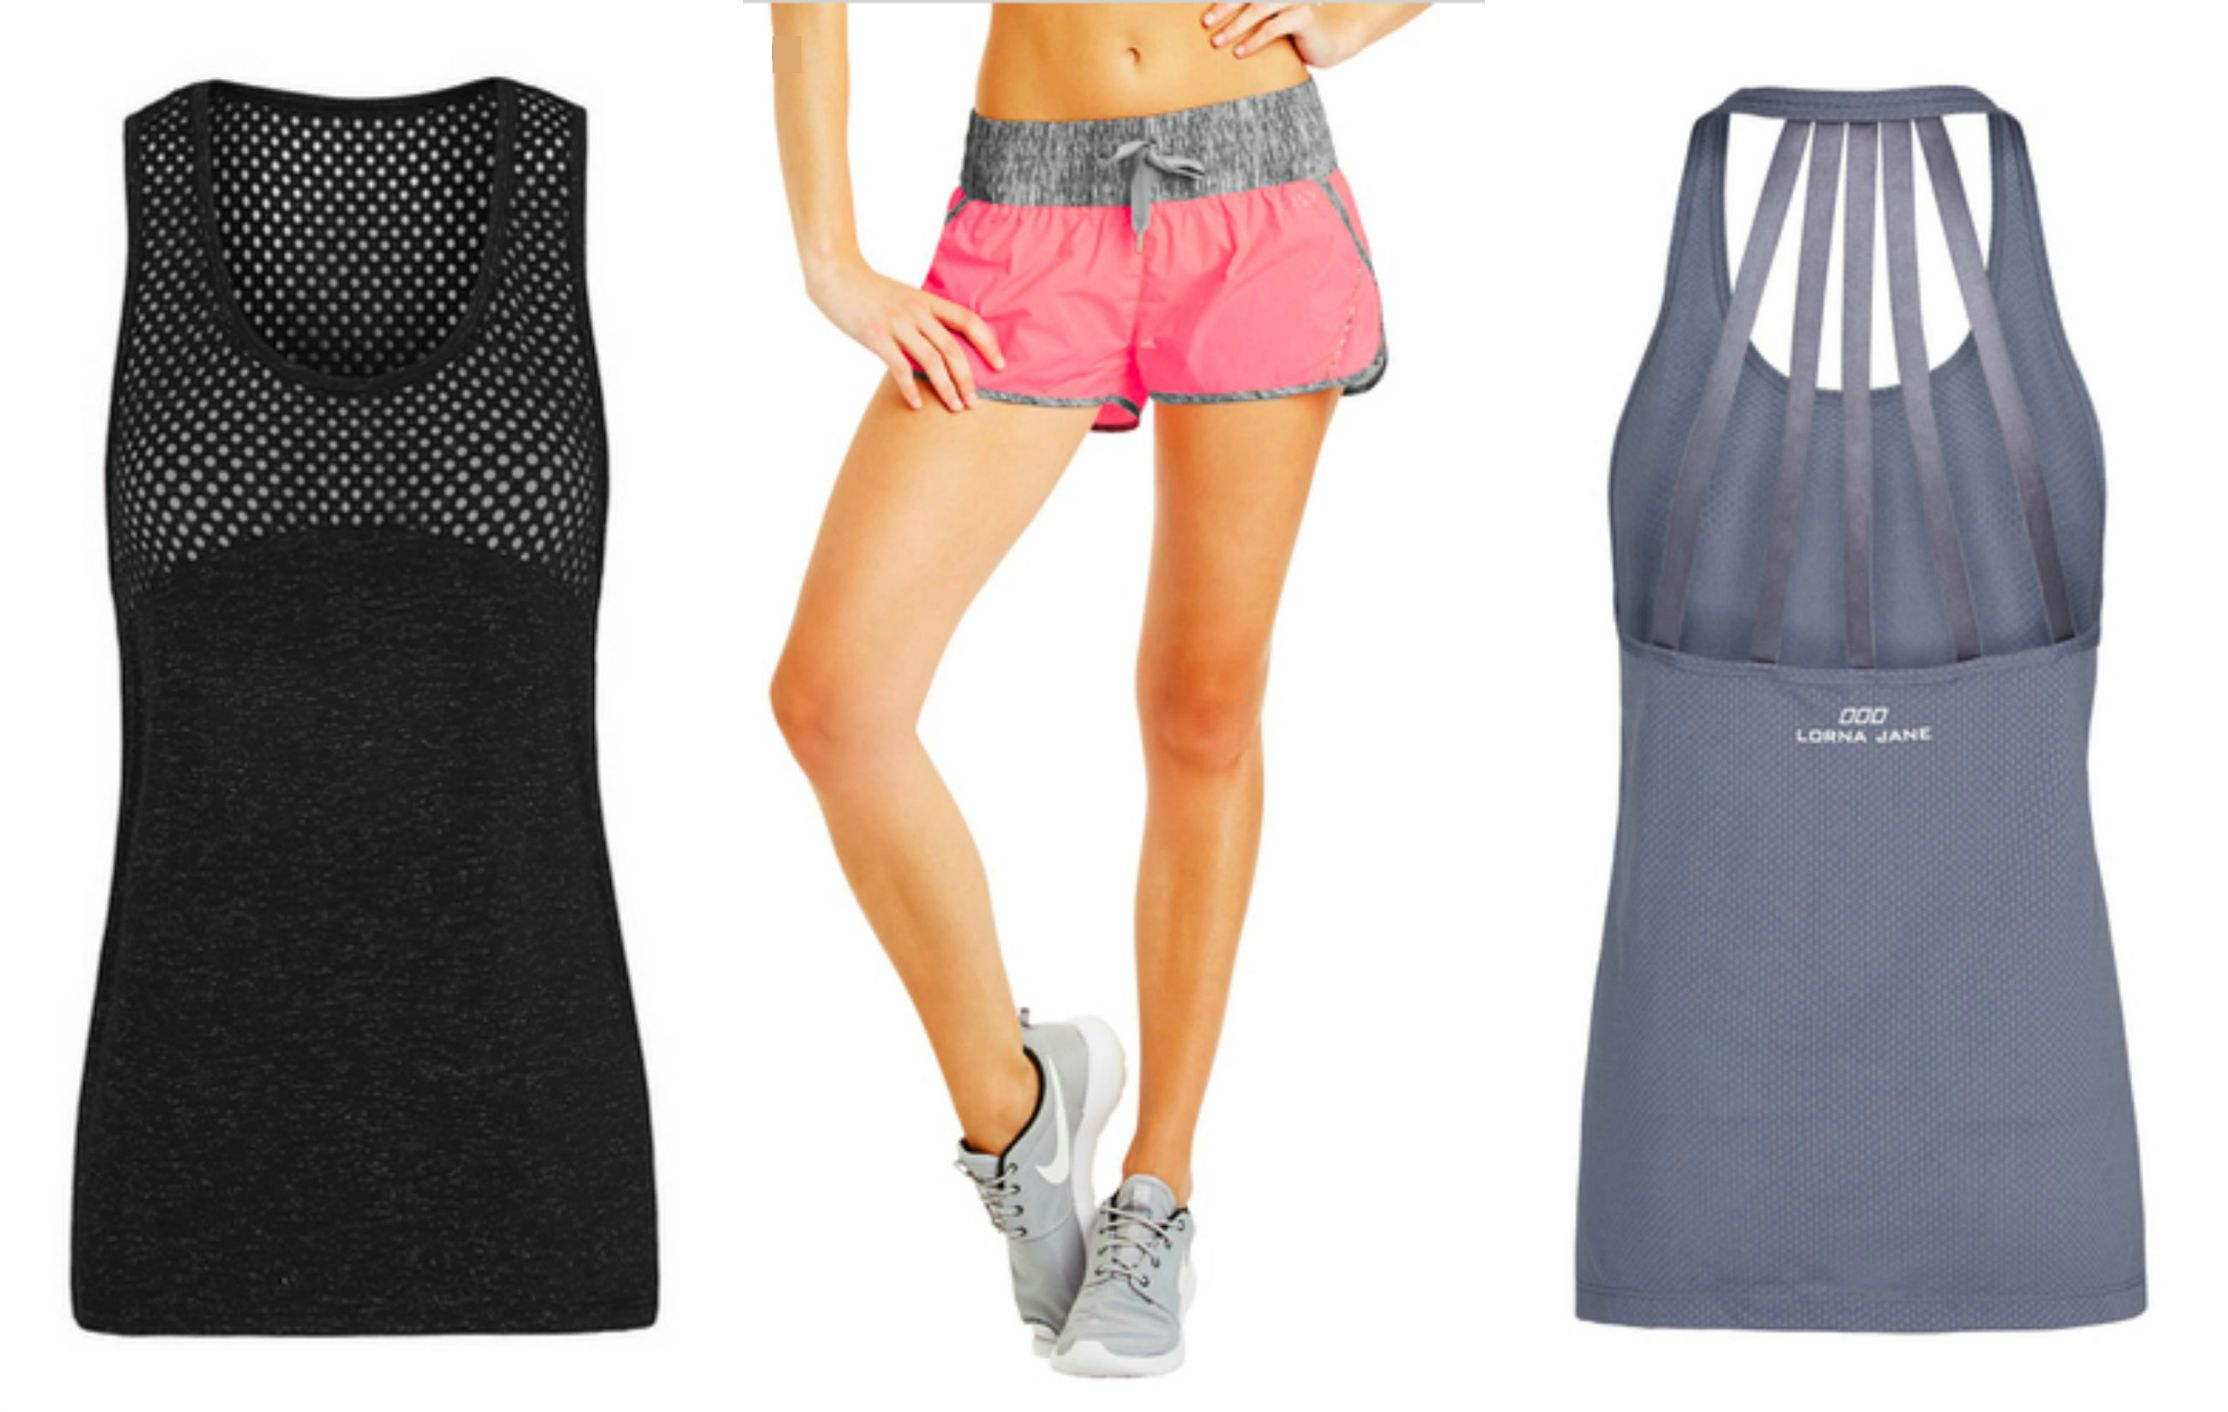 lorna jane workout gear